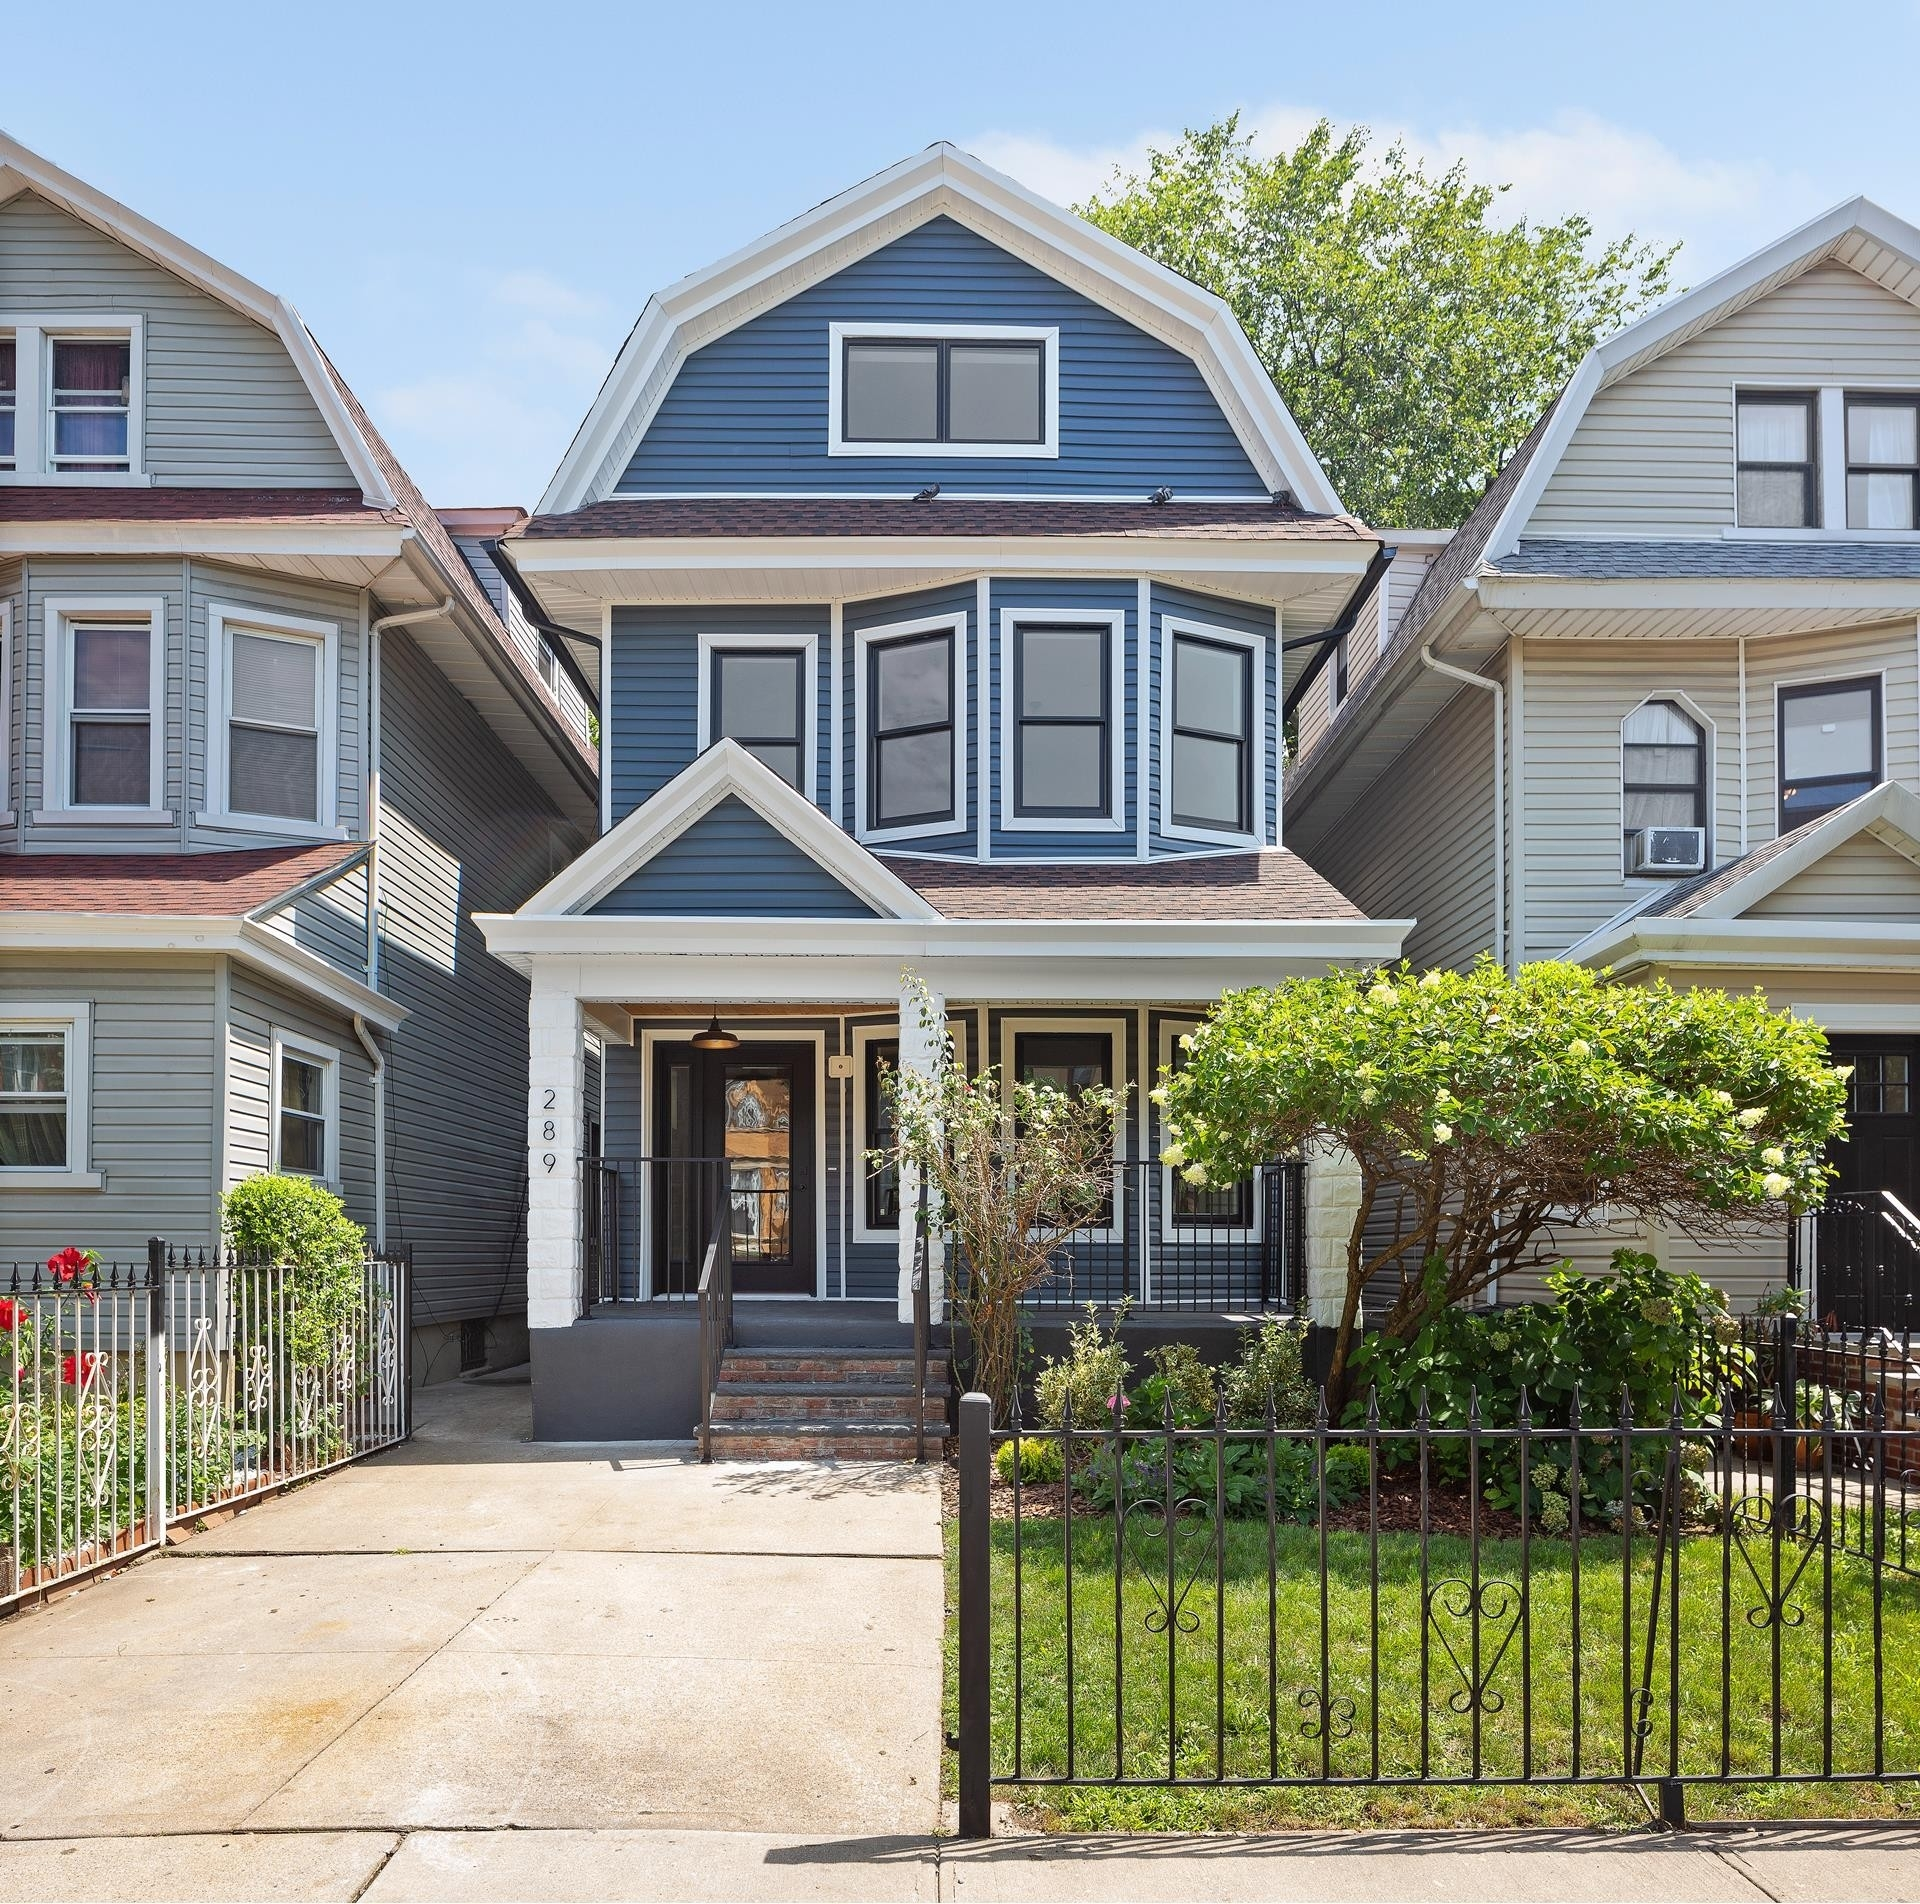 Property at Kensington, Brooklyn, NY 11218